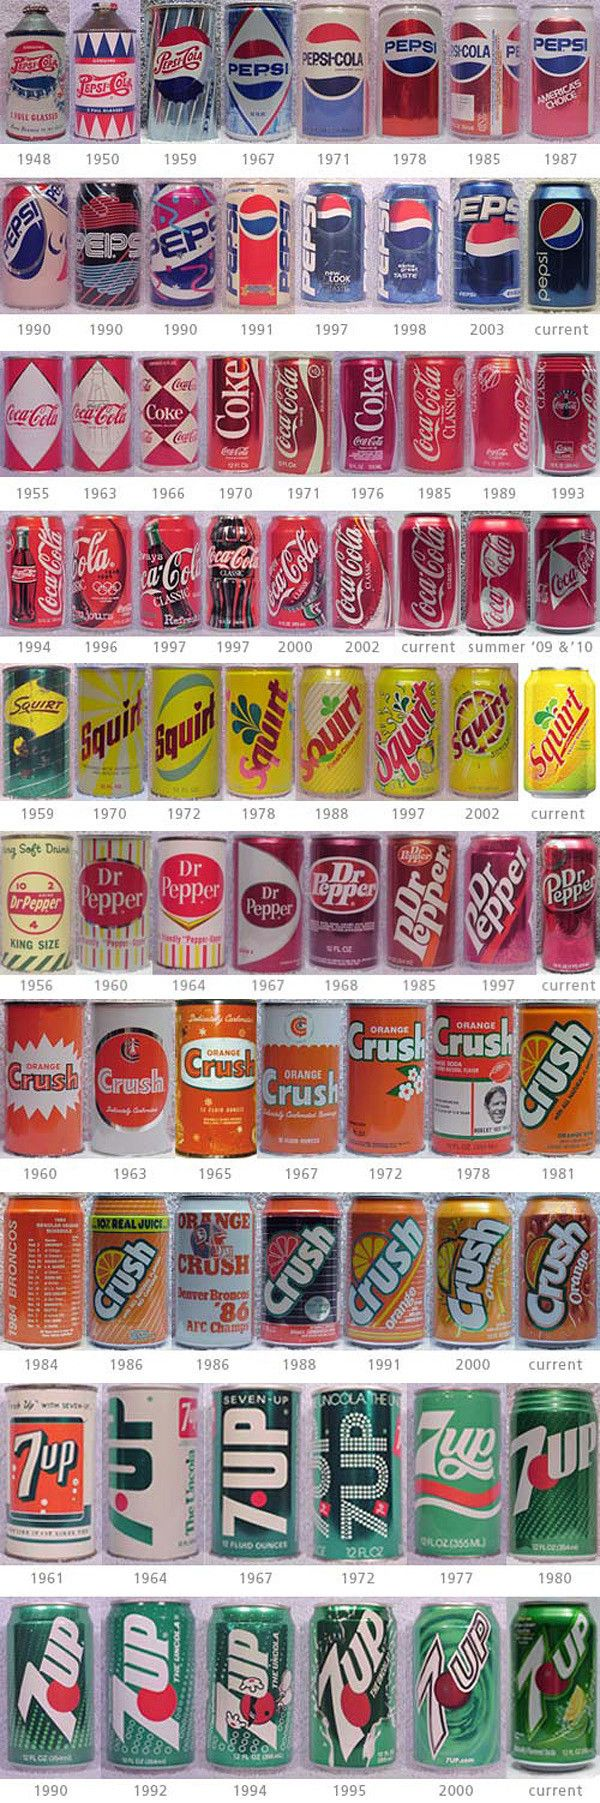 soda packaging through the years.